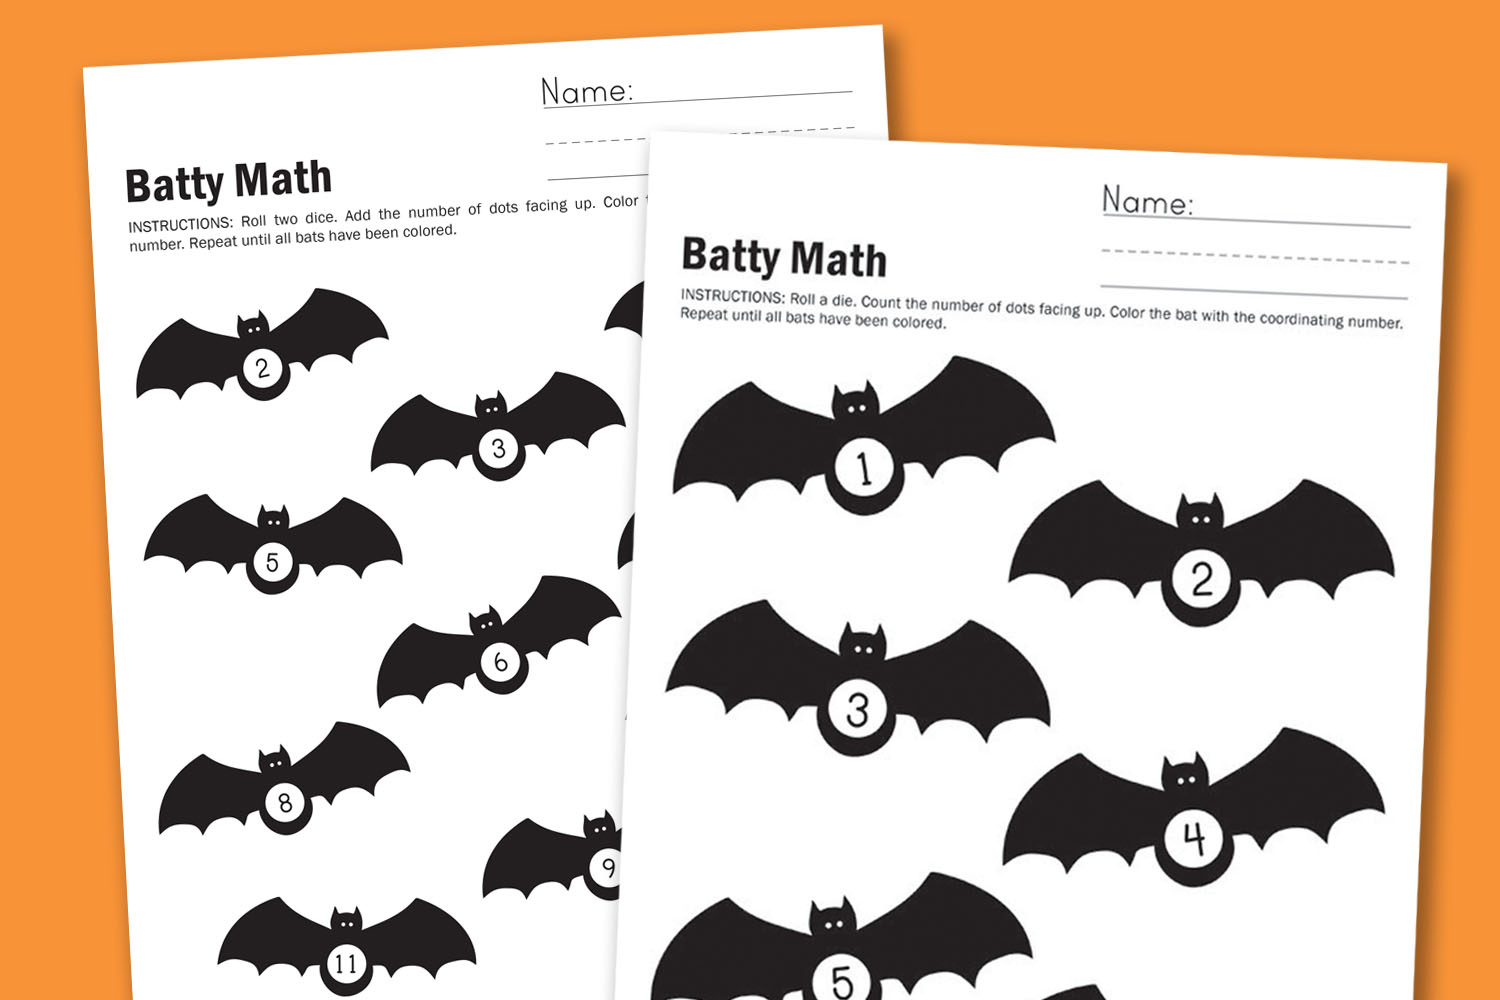 worksheet wednesday batty math paging supermom. Black Bedroom Furniture Sets. Home Design Ideas